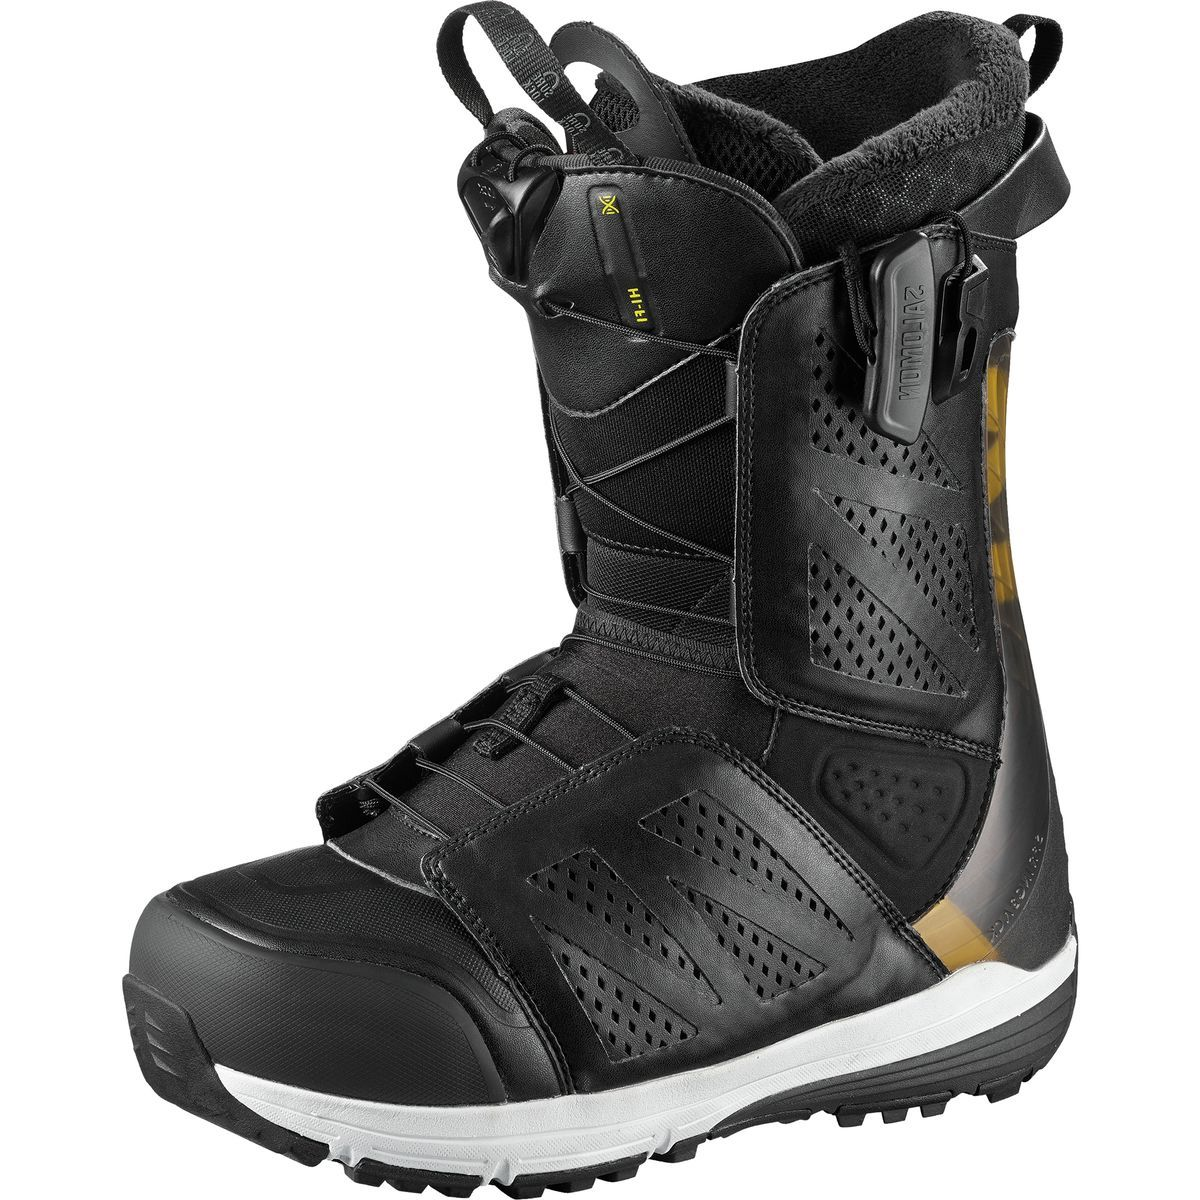 Salomon Snowboards HiFi Snowboard Boot - Men's